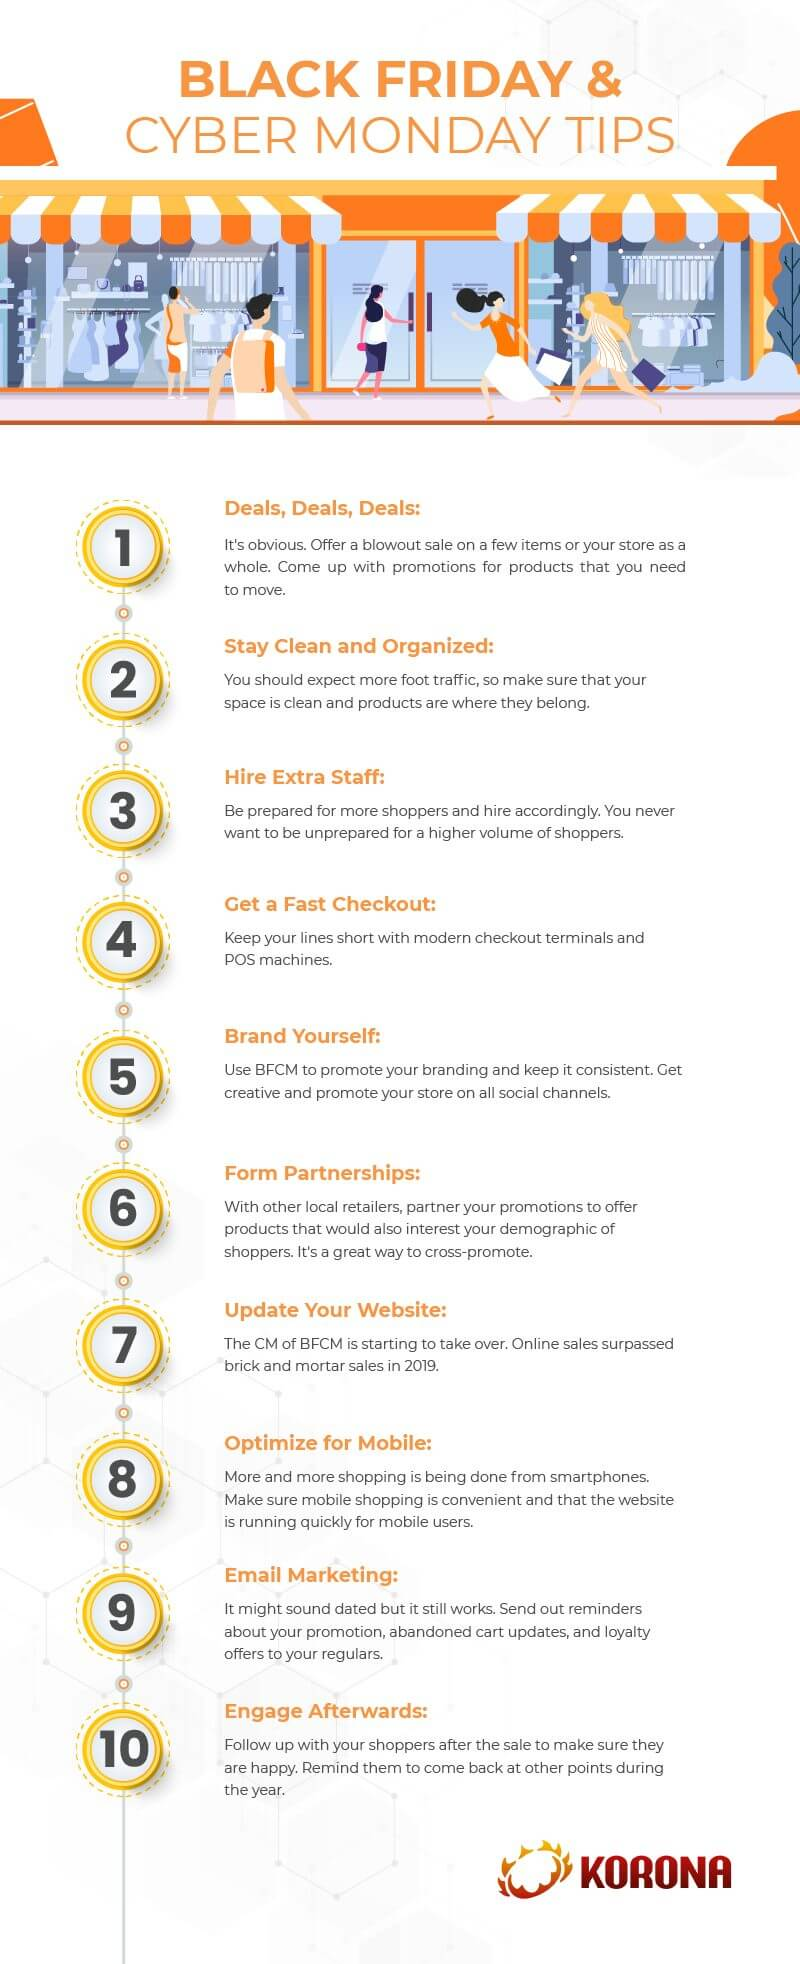 Infograph showing 10 Black Friday Cyber Monday tips for retailers